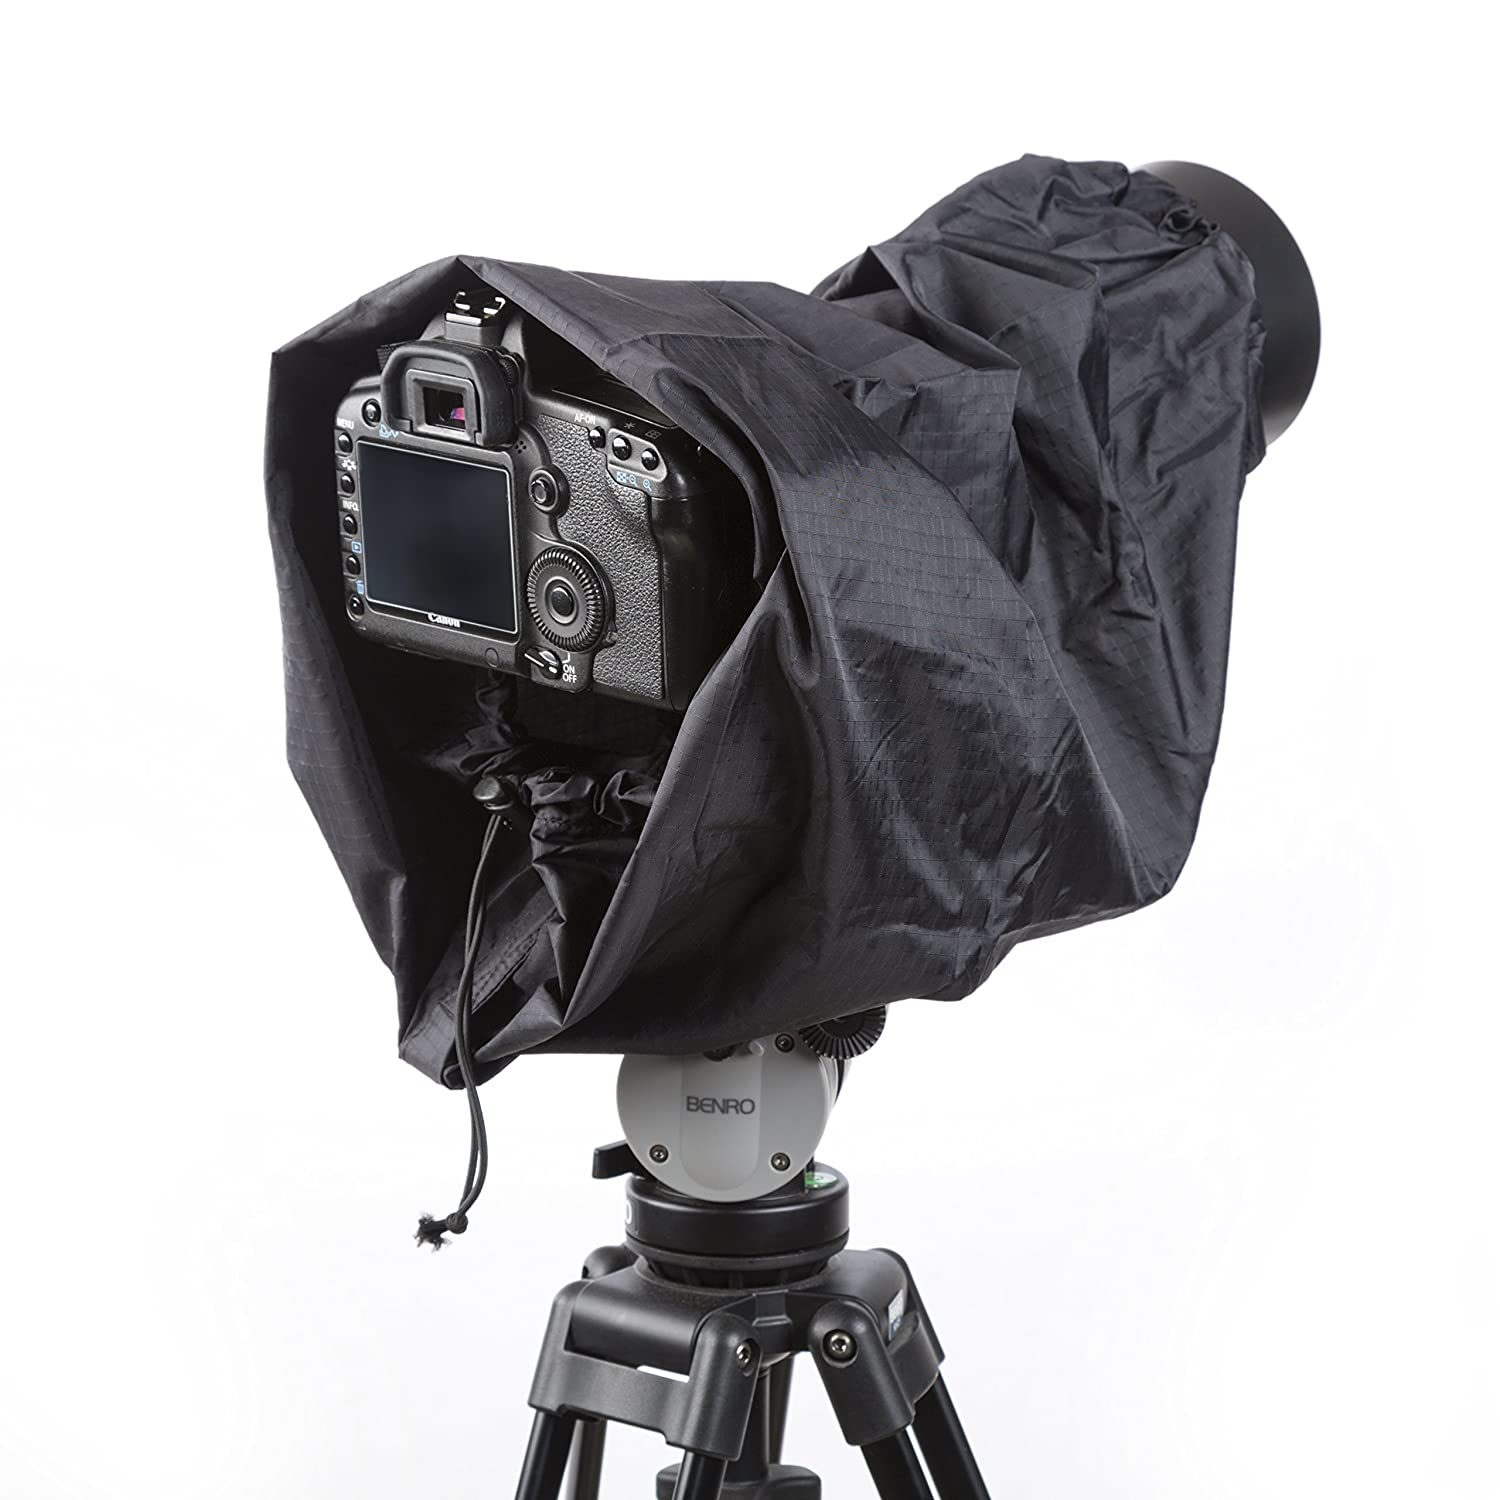 Lenses Photographic Equipment Movo CRC27 Storm Raincover Protector for DSLR Cameras Large Size: 27 x 14.5